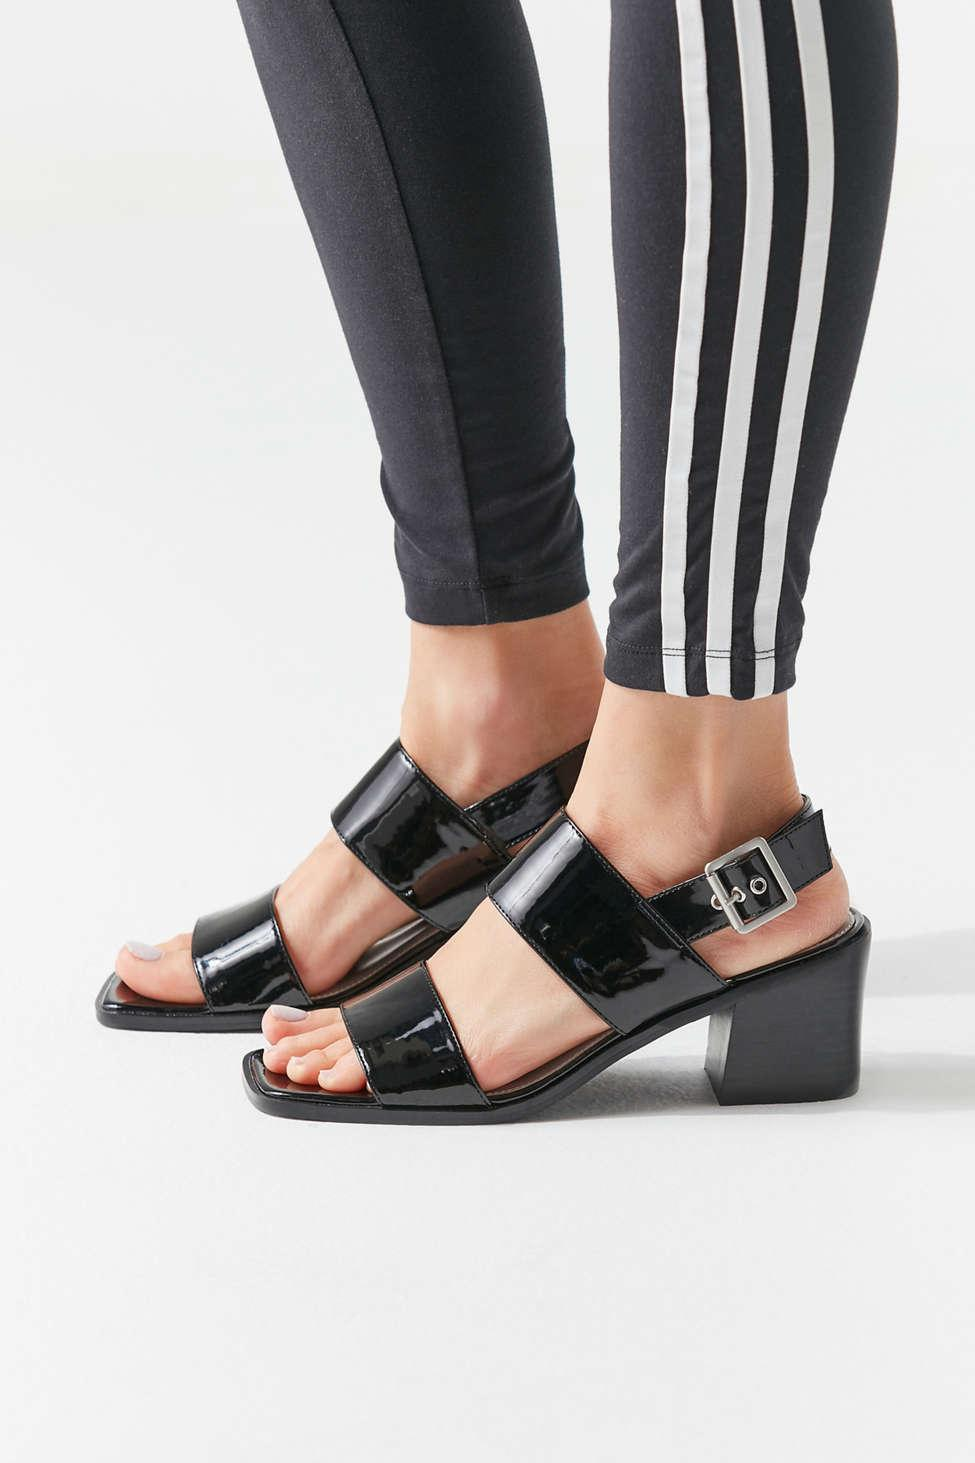 c852421d5d8 Lyst - Urban Outfitters Uo Nicole Slingback Sandal in Black